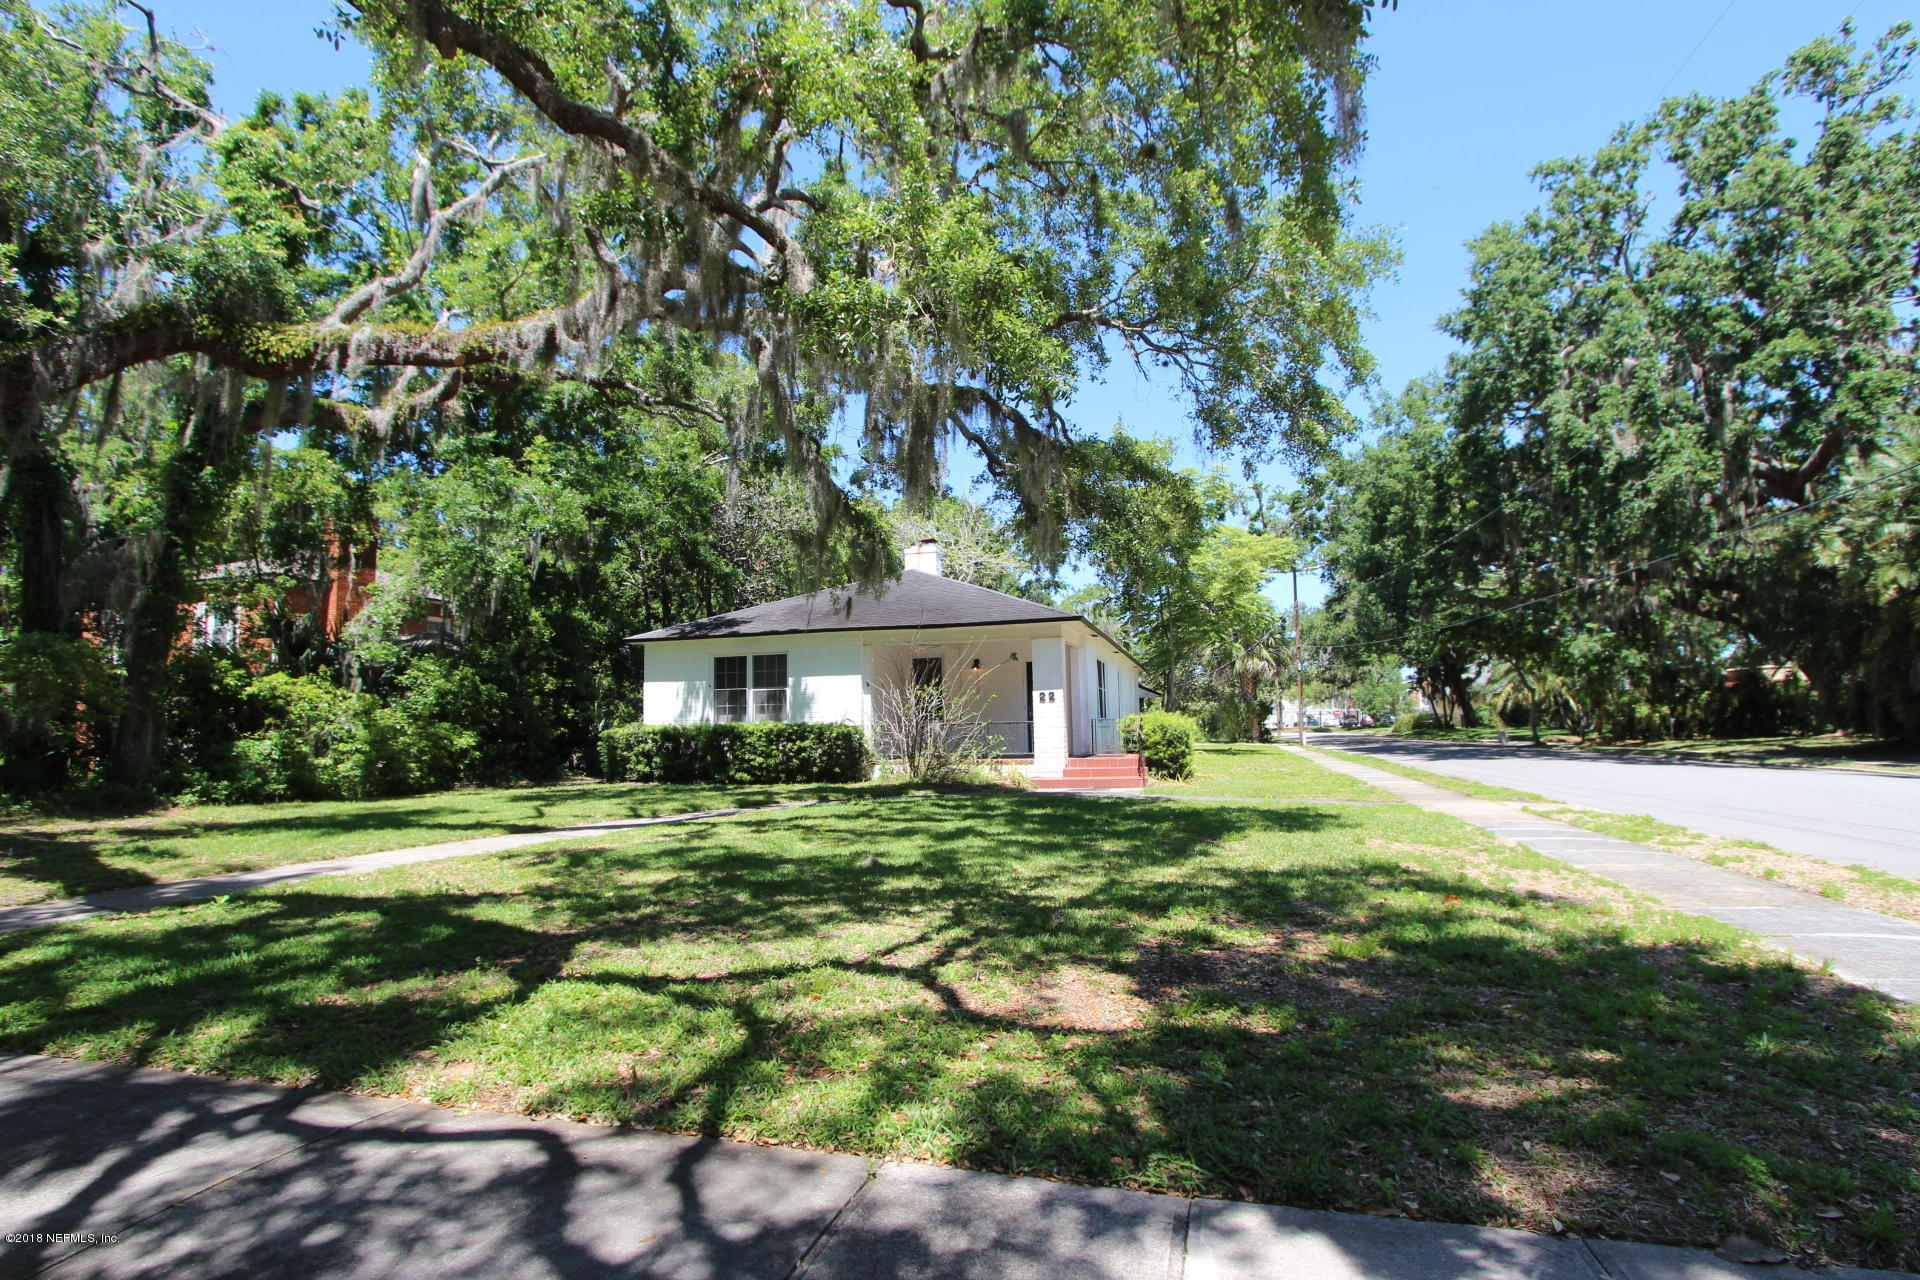 22 NELMAR, ST AUGUSTINE, FLORIDA 32084, 3 Bedrooms Bedrooms, ,3 BathroomsBathrooms,Residential - single family,For sale,NELMAR,953448